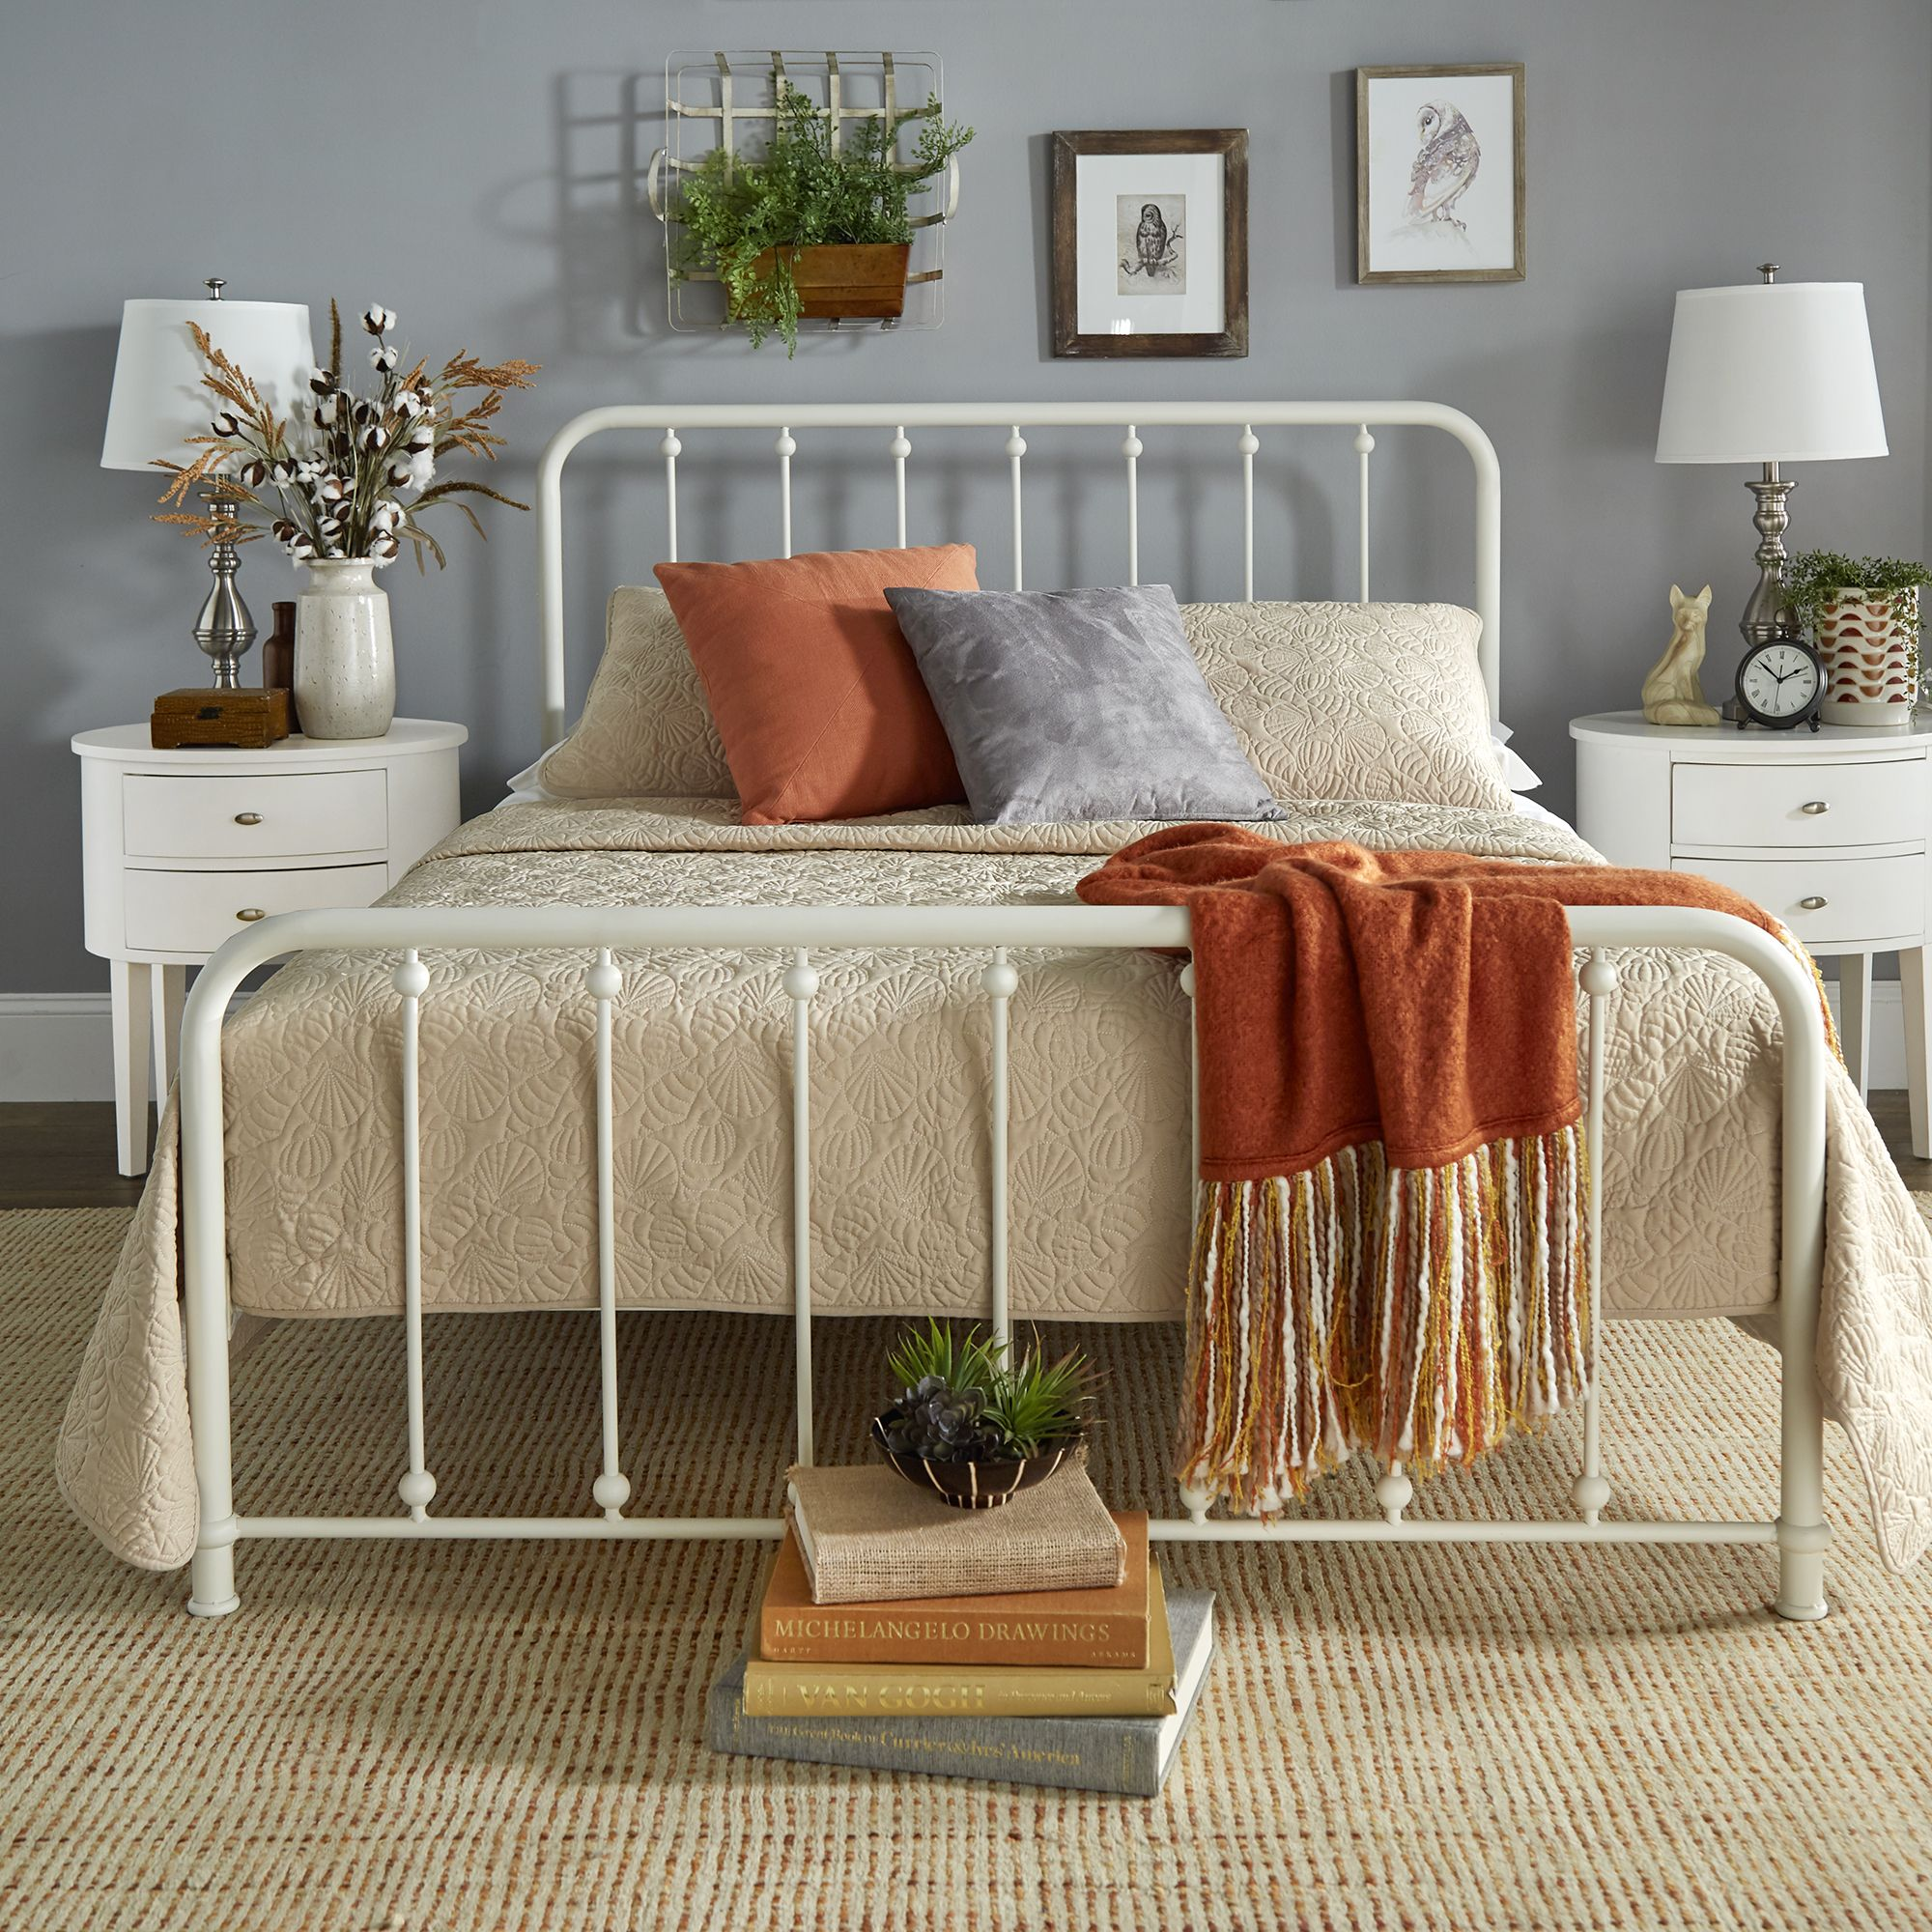 The Ultimate Romantic Decor for Creating a Vintage-Chic Bedroom